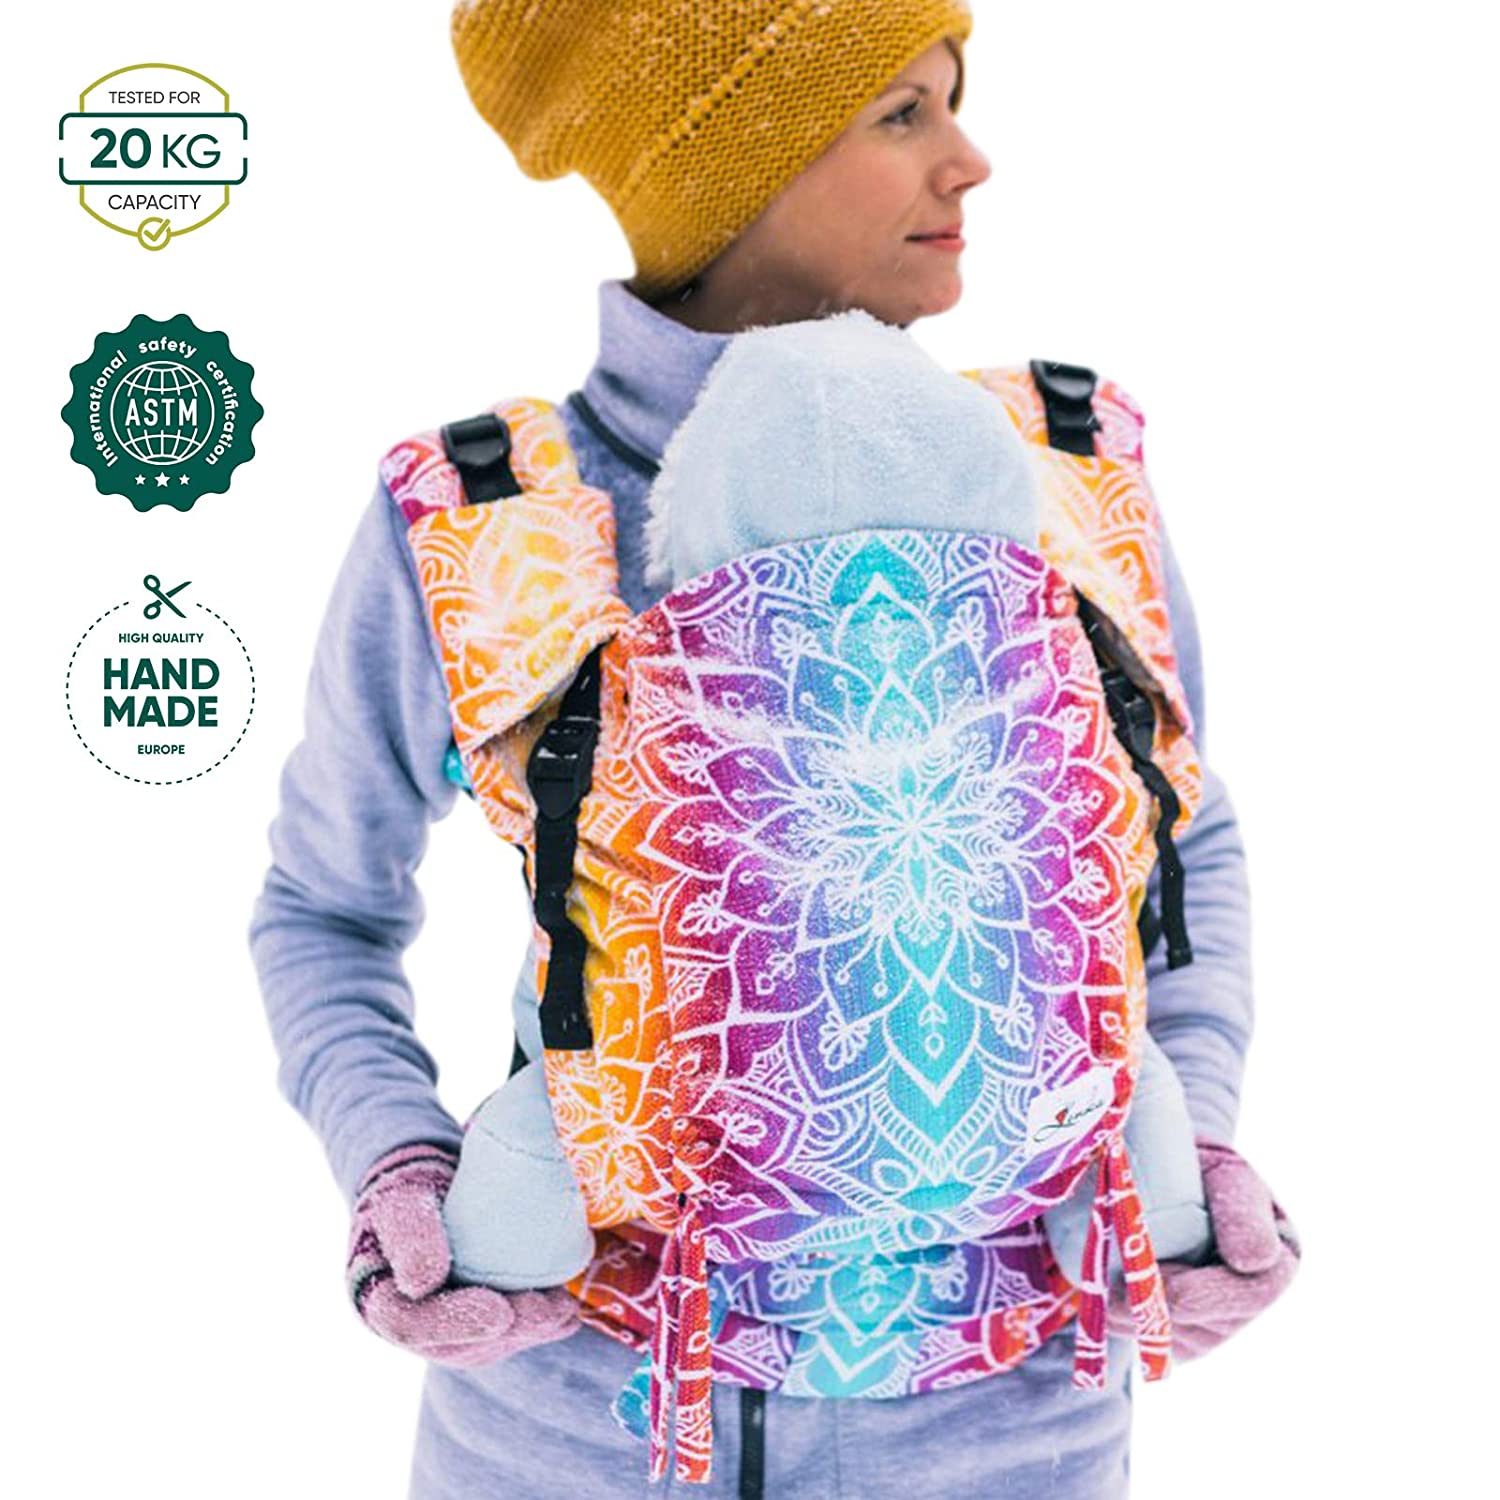 Be Lenka Ergonomic Baby Carrier Mandala Night Colour Grows with Your Baby from 3 Months to About 3-Year-Old Handmade in Europe Standard Shoulder Straps